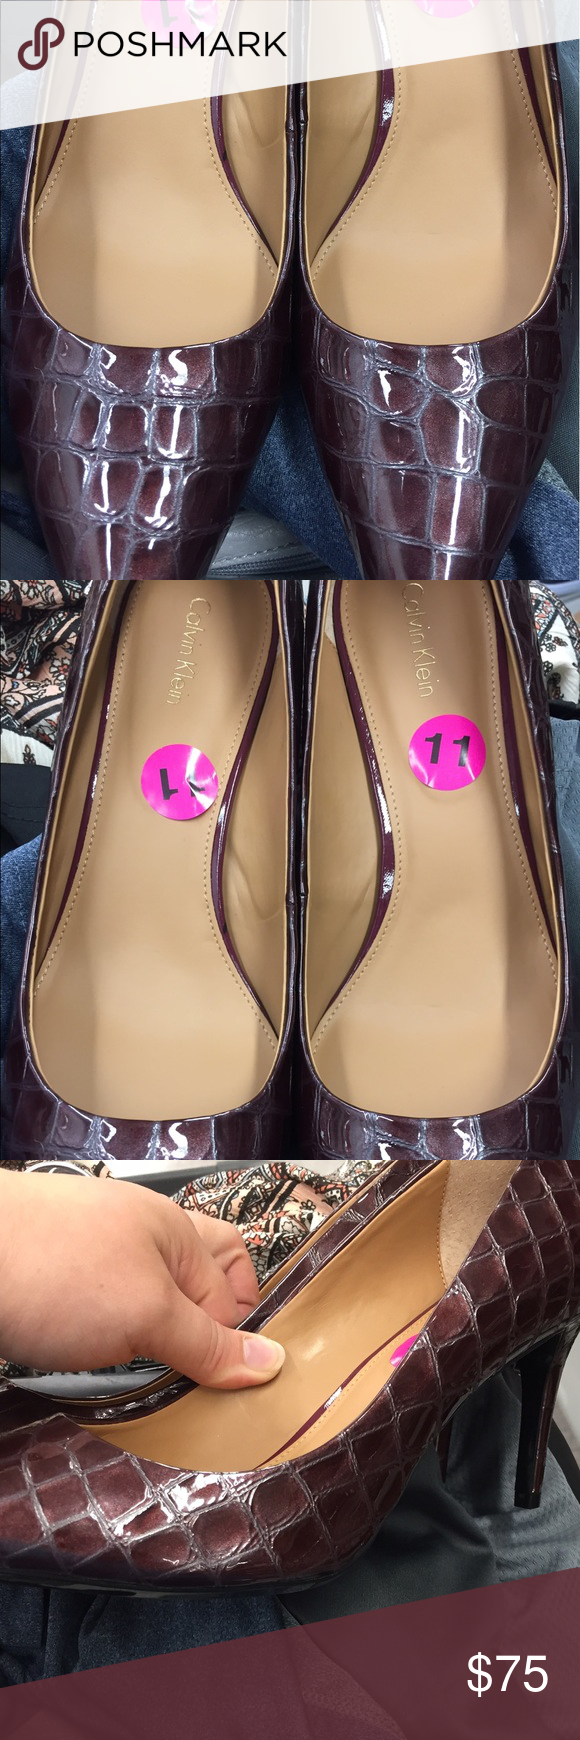 BRAND NEW! Calvin Klein Burgandy Crocodile Heels. BRAND NEW! With size sticker! Calvin Klein Shoes Heels